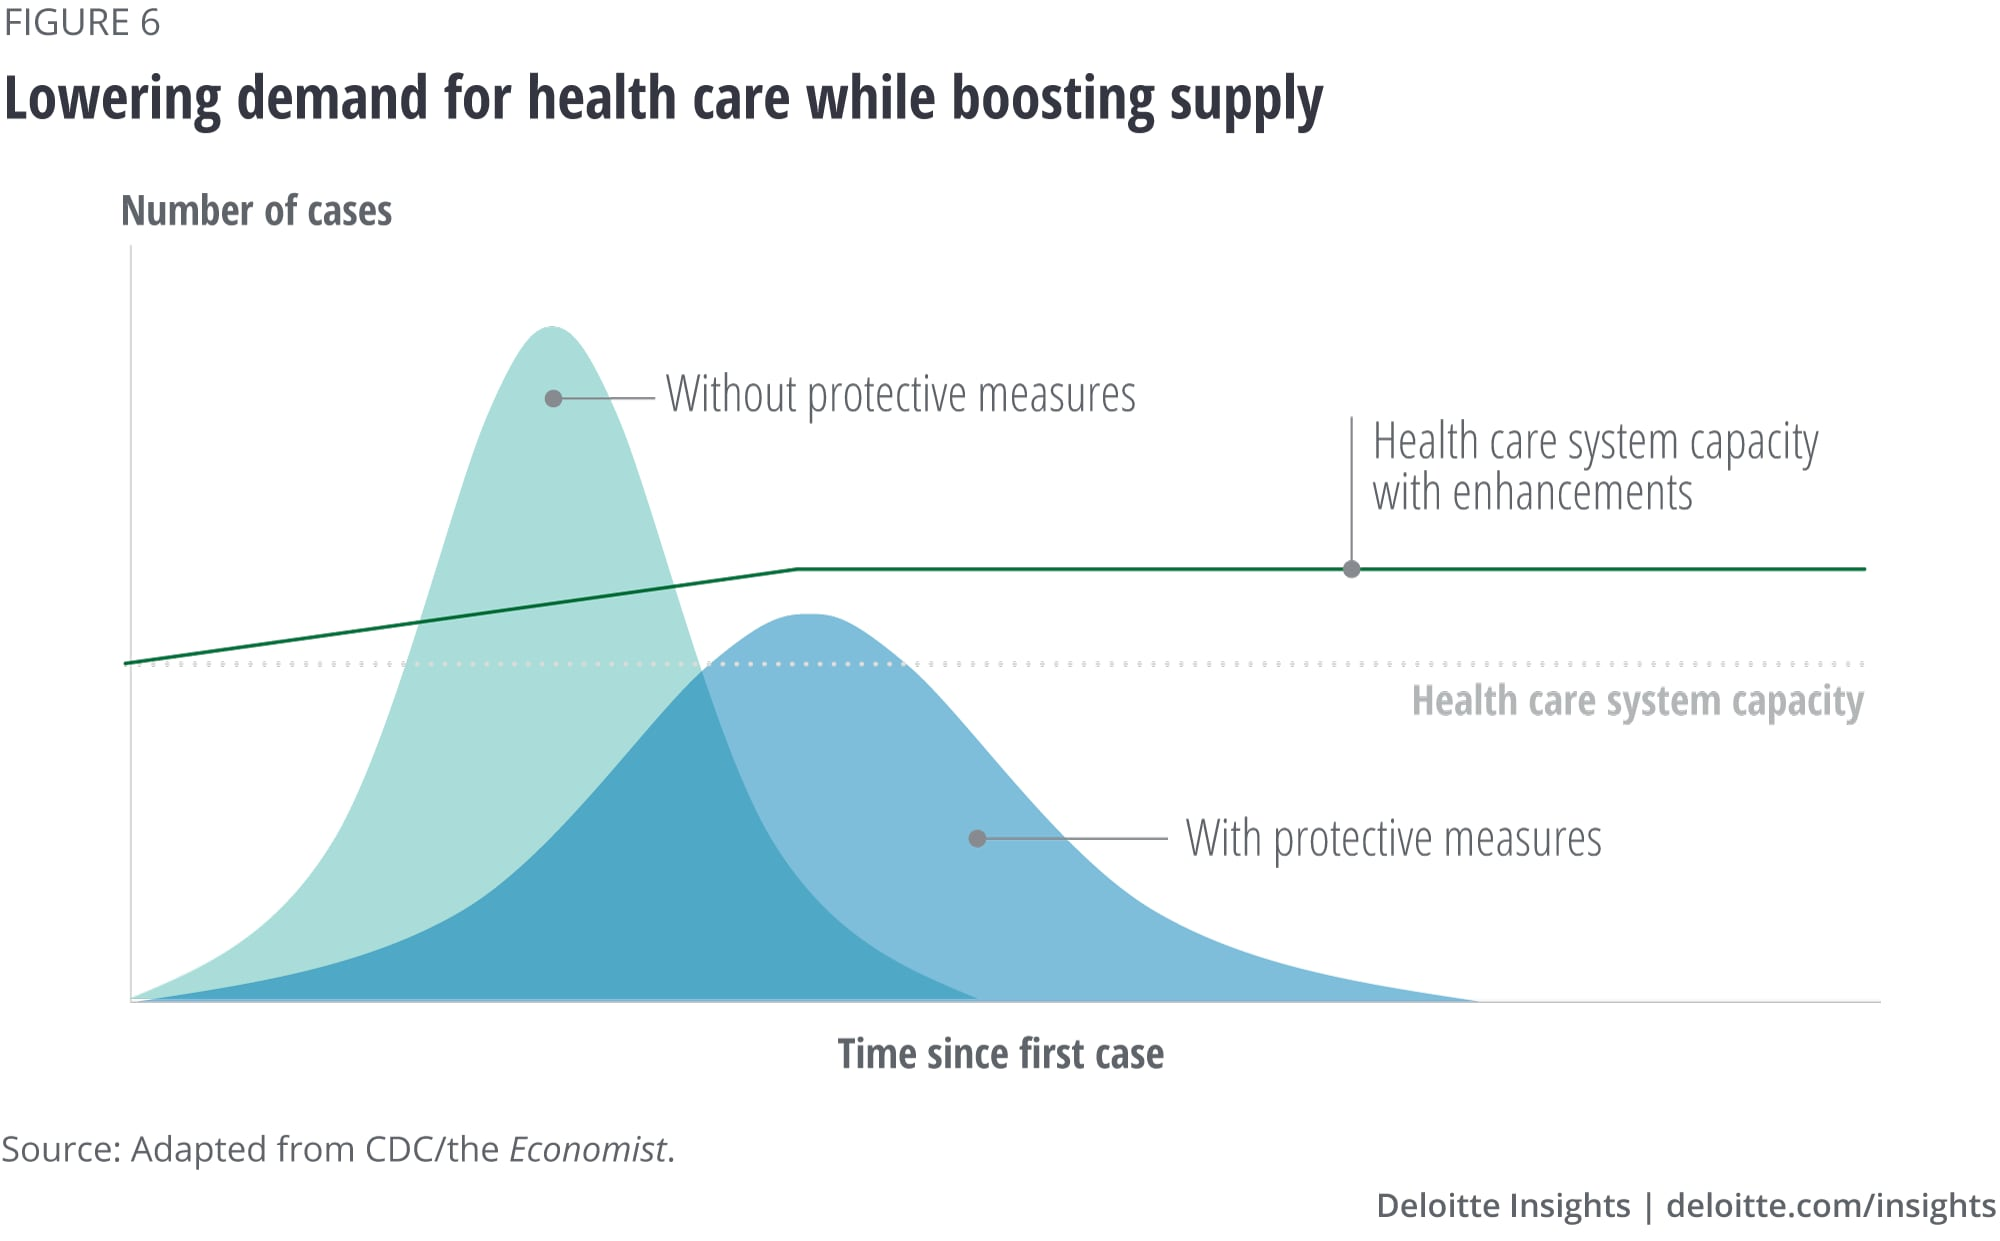 Lowering demand for health care while boosting supply